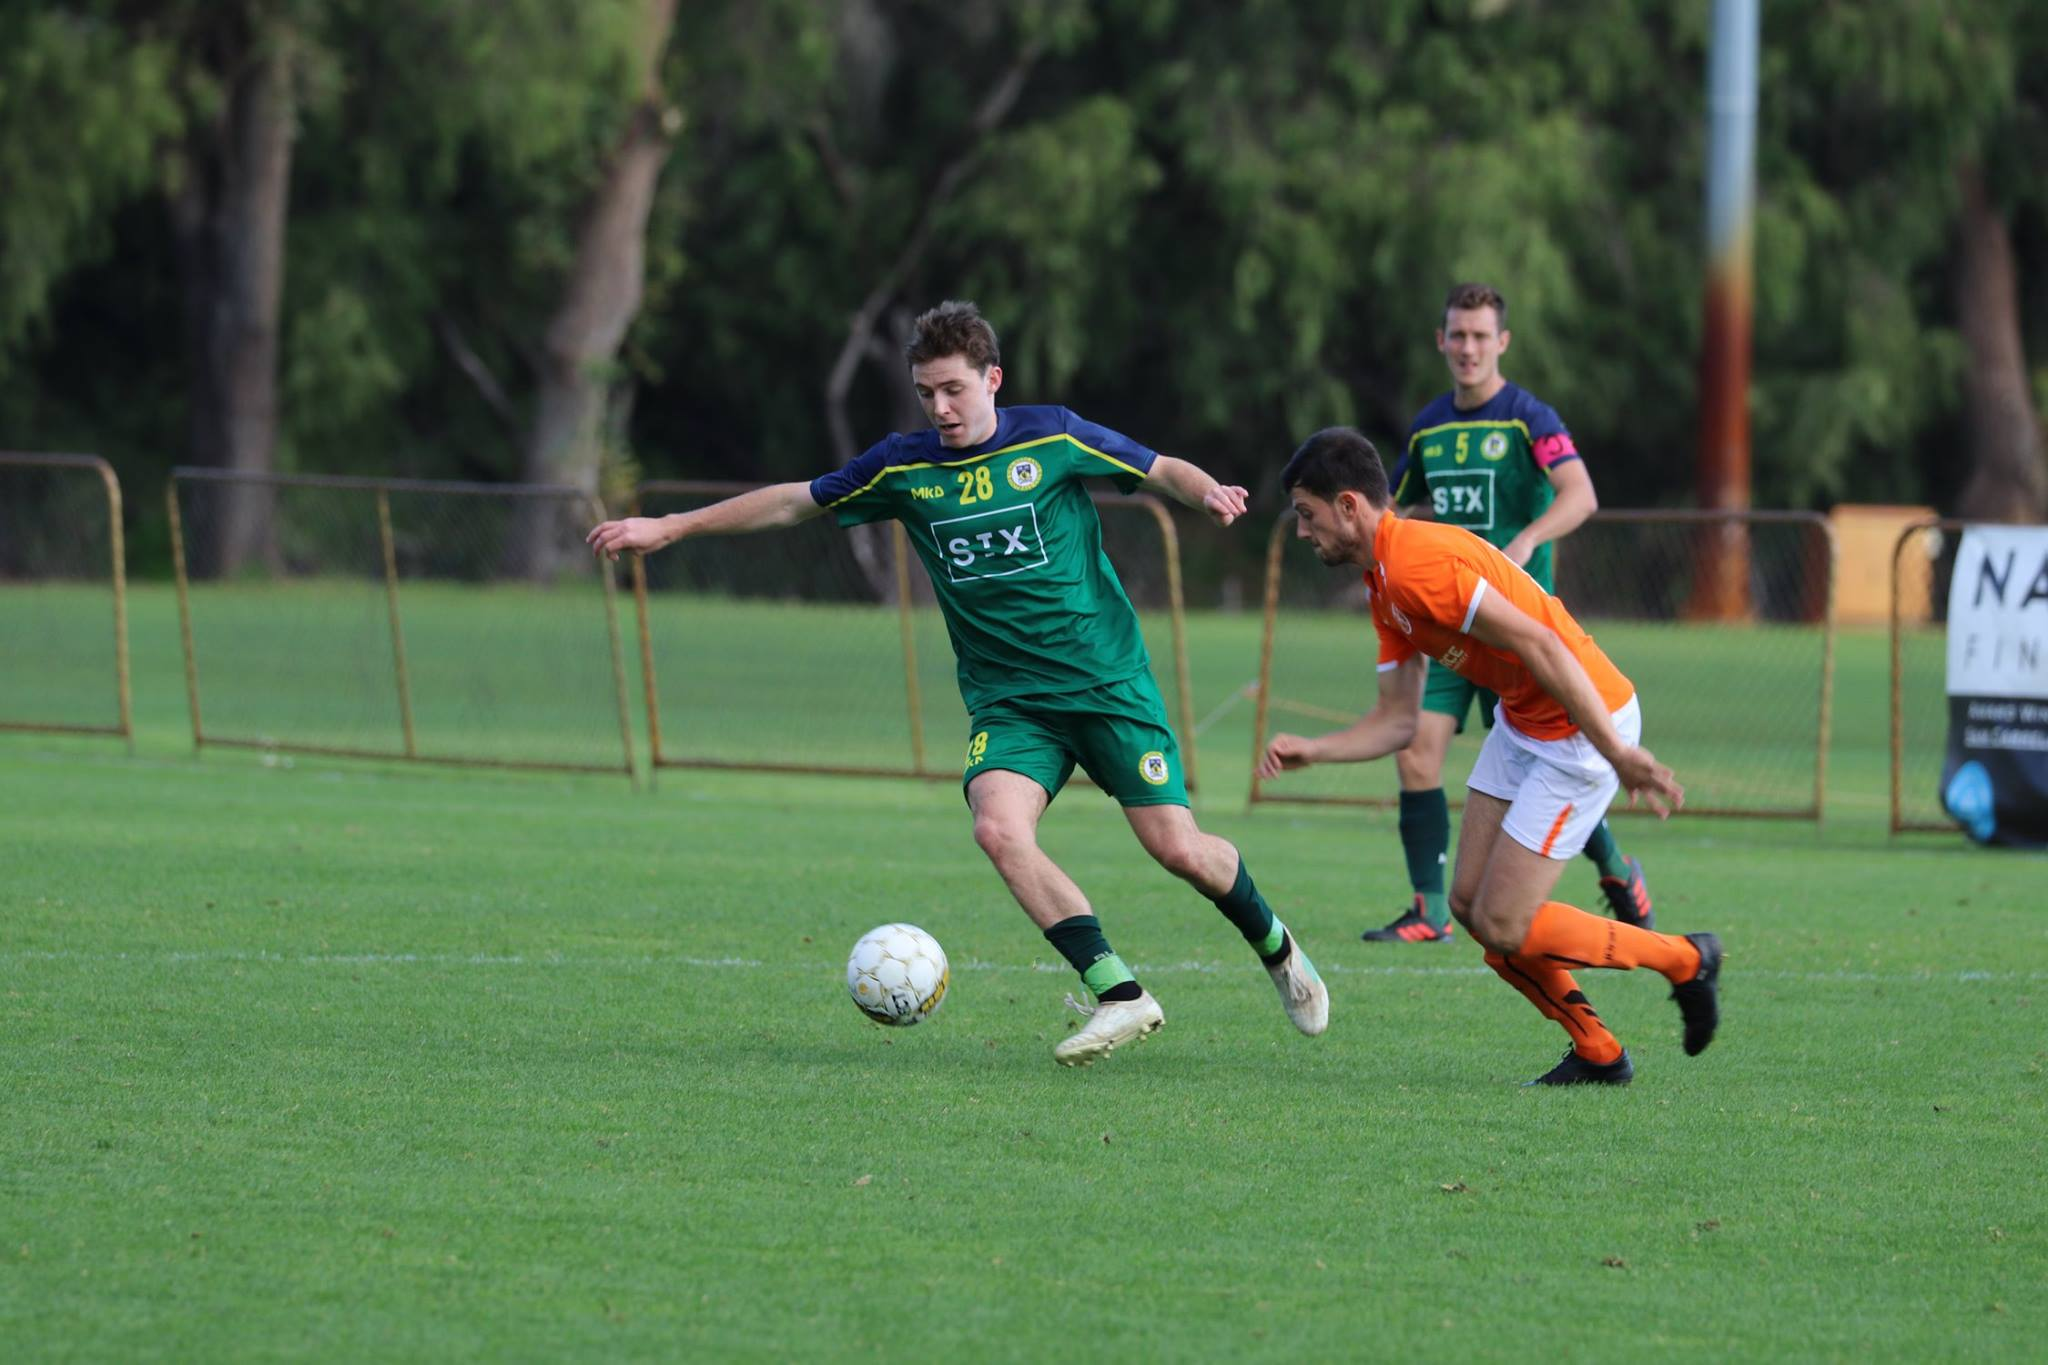 DEVLIN ON THE RUN IN THE 3-3 DRAW EARLIER THIS SEASON - CREDIT: GABRIELE MALUGA